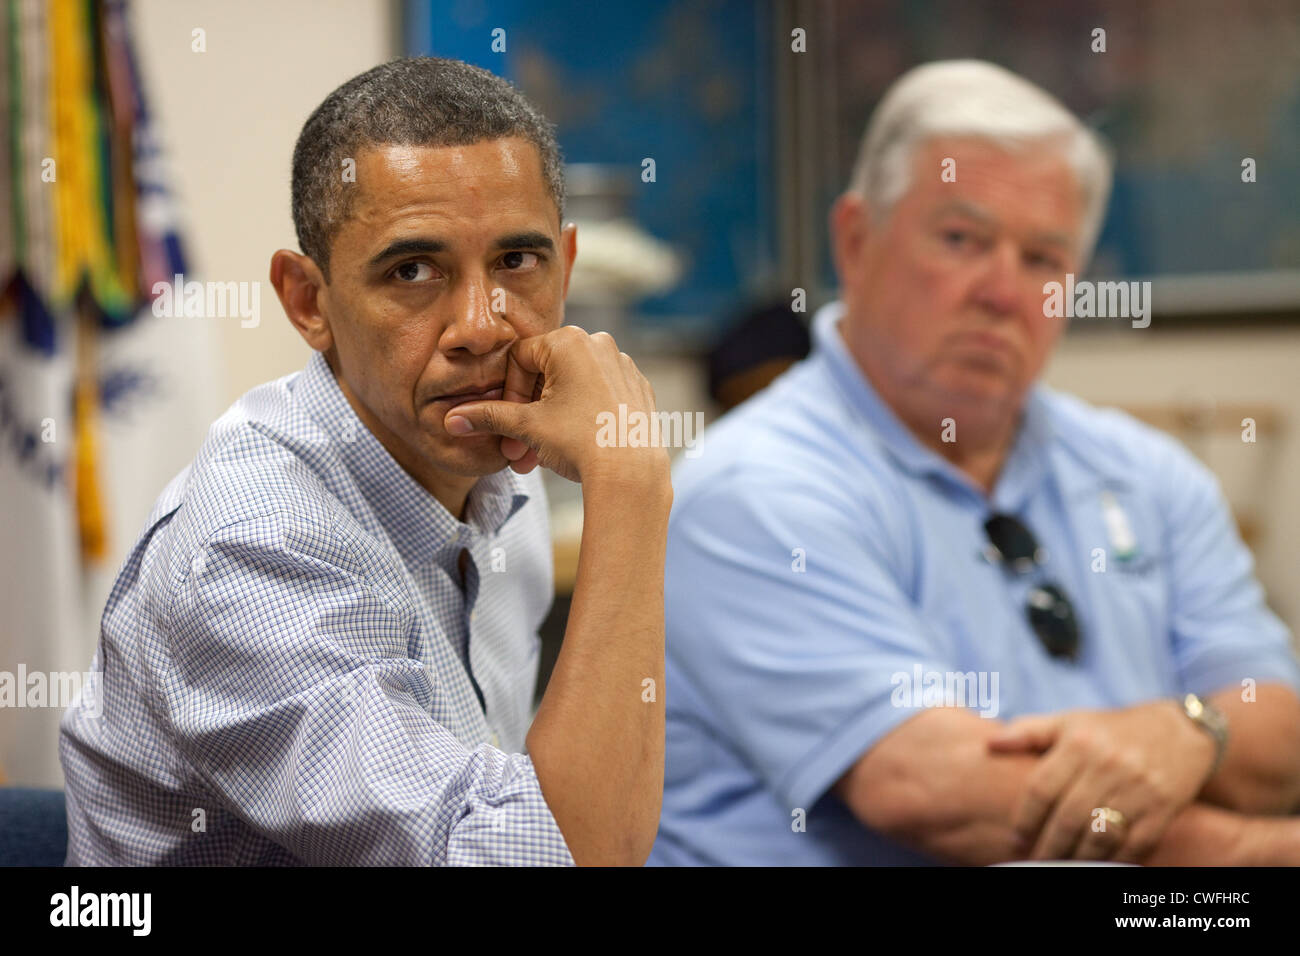 President Barack Obama listens during a briefing about the ongoing response to the BP oil spill, at the Gulfport - Stock Image